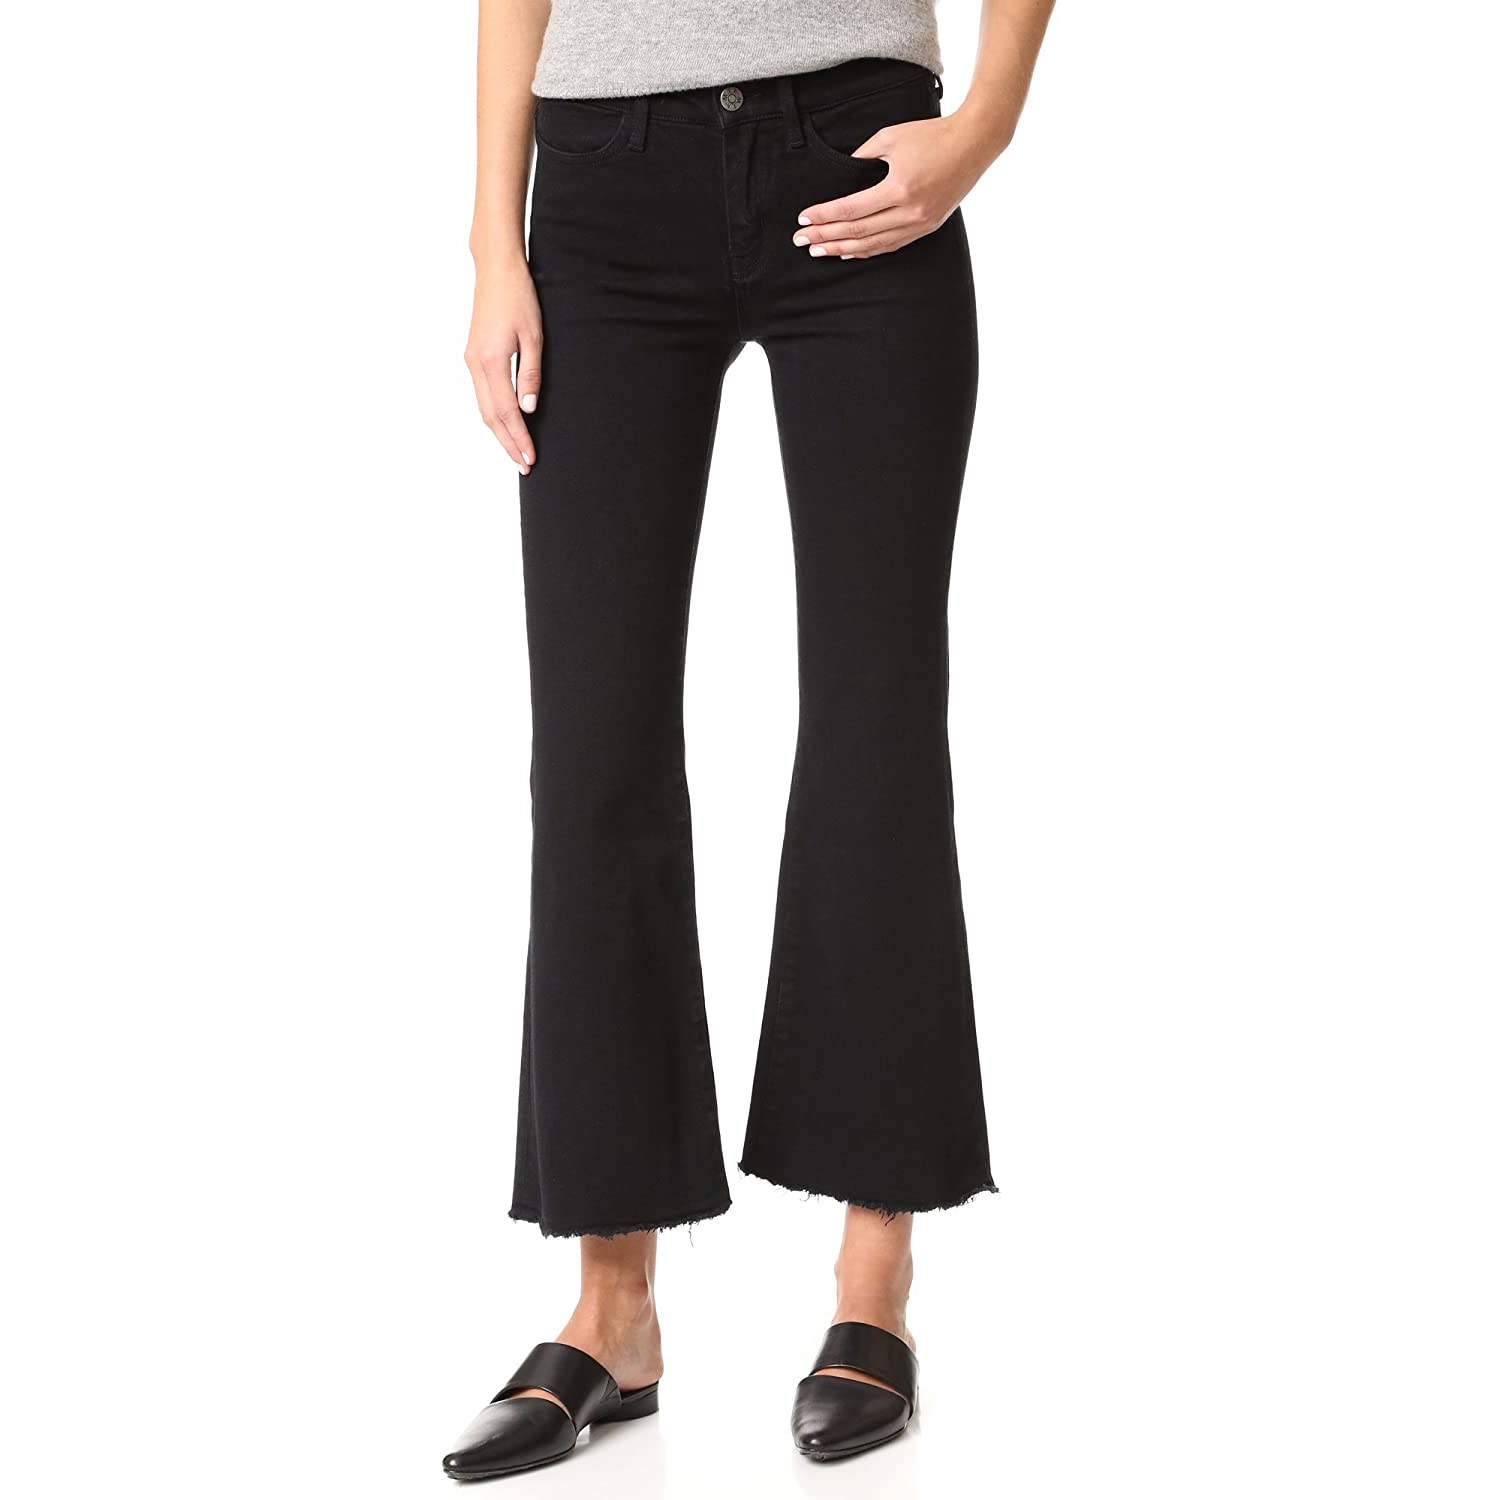 MiH Jeans Women's Jeans